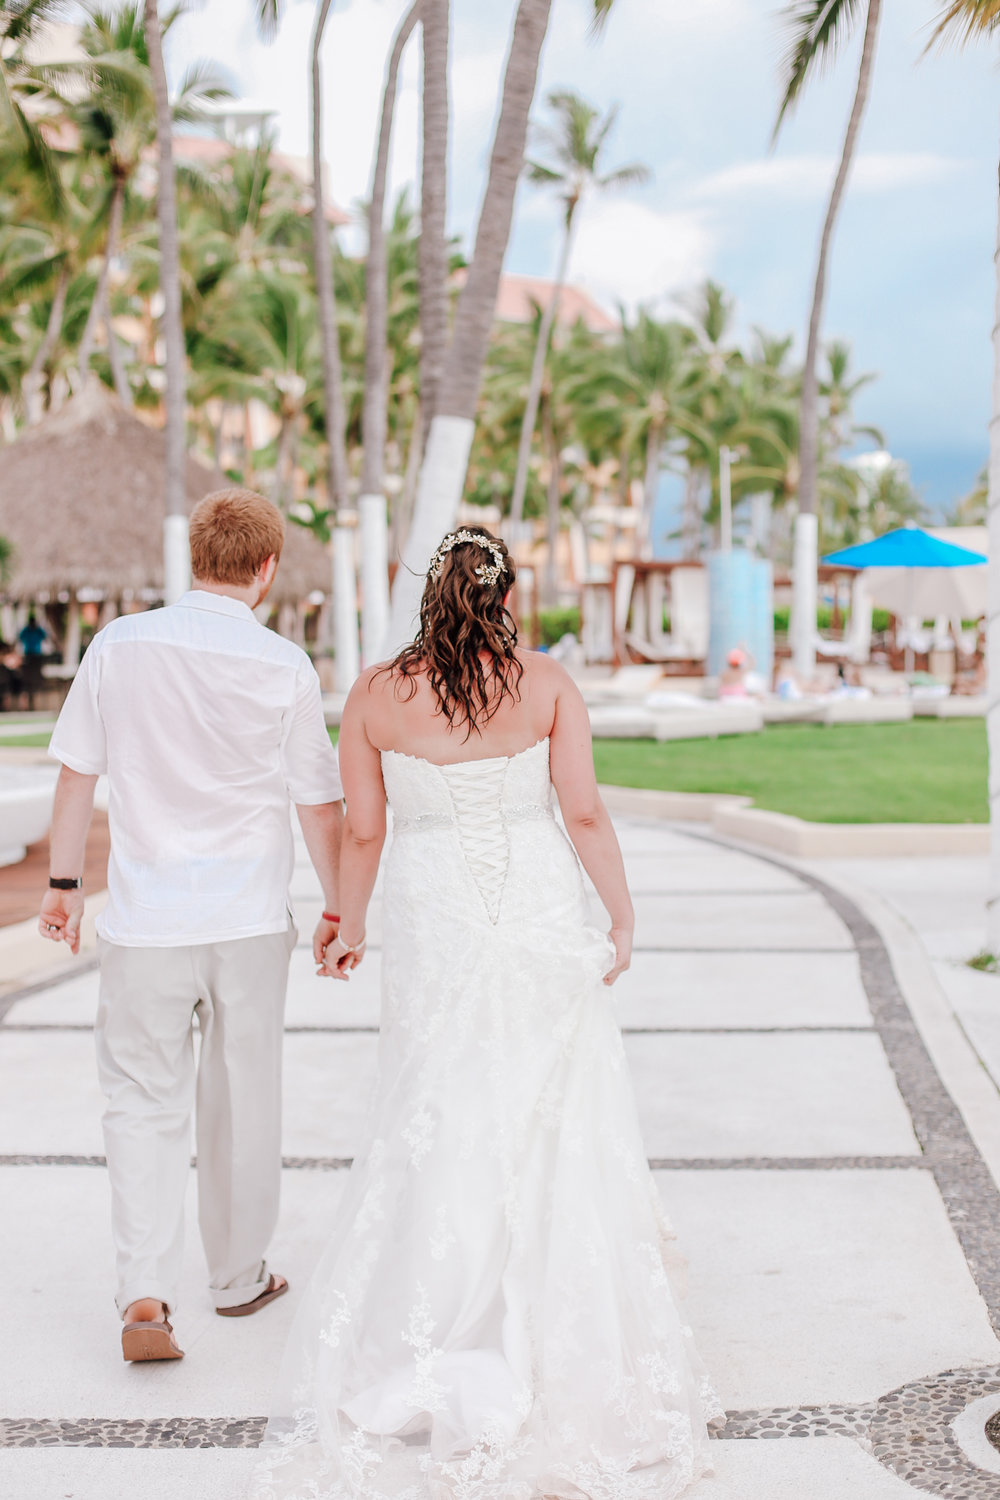 Tiffany and Ryan - Puerto Vallarta Wedding Photographer - 100.jpg